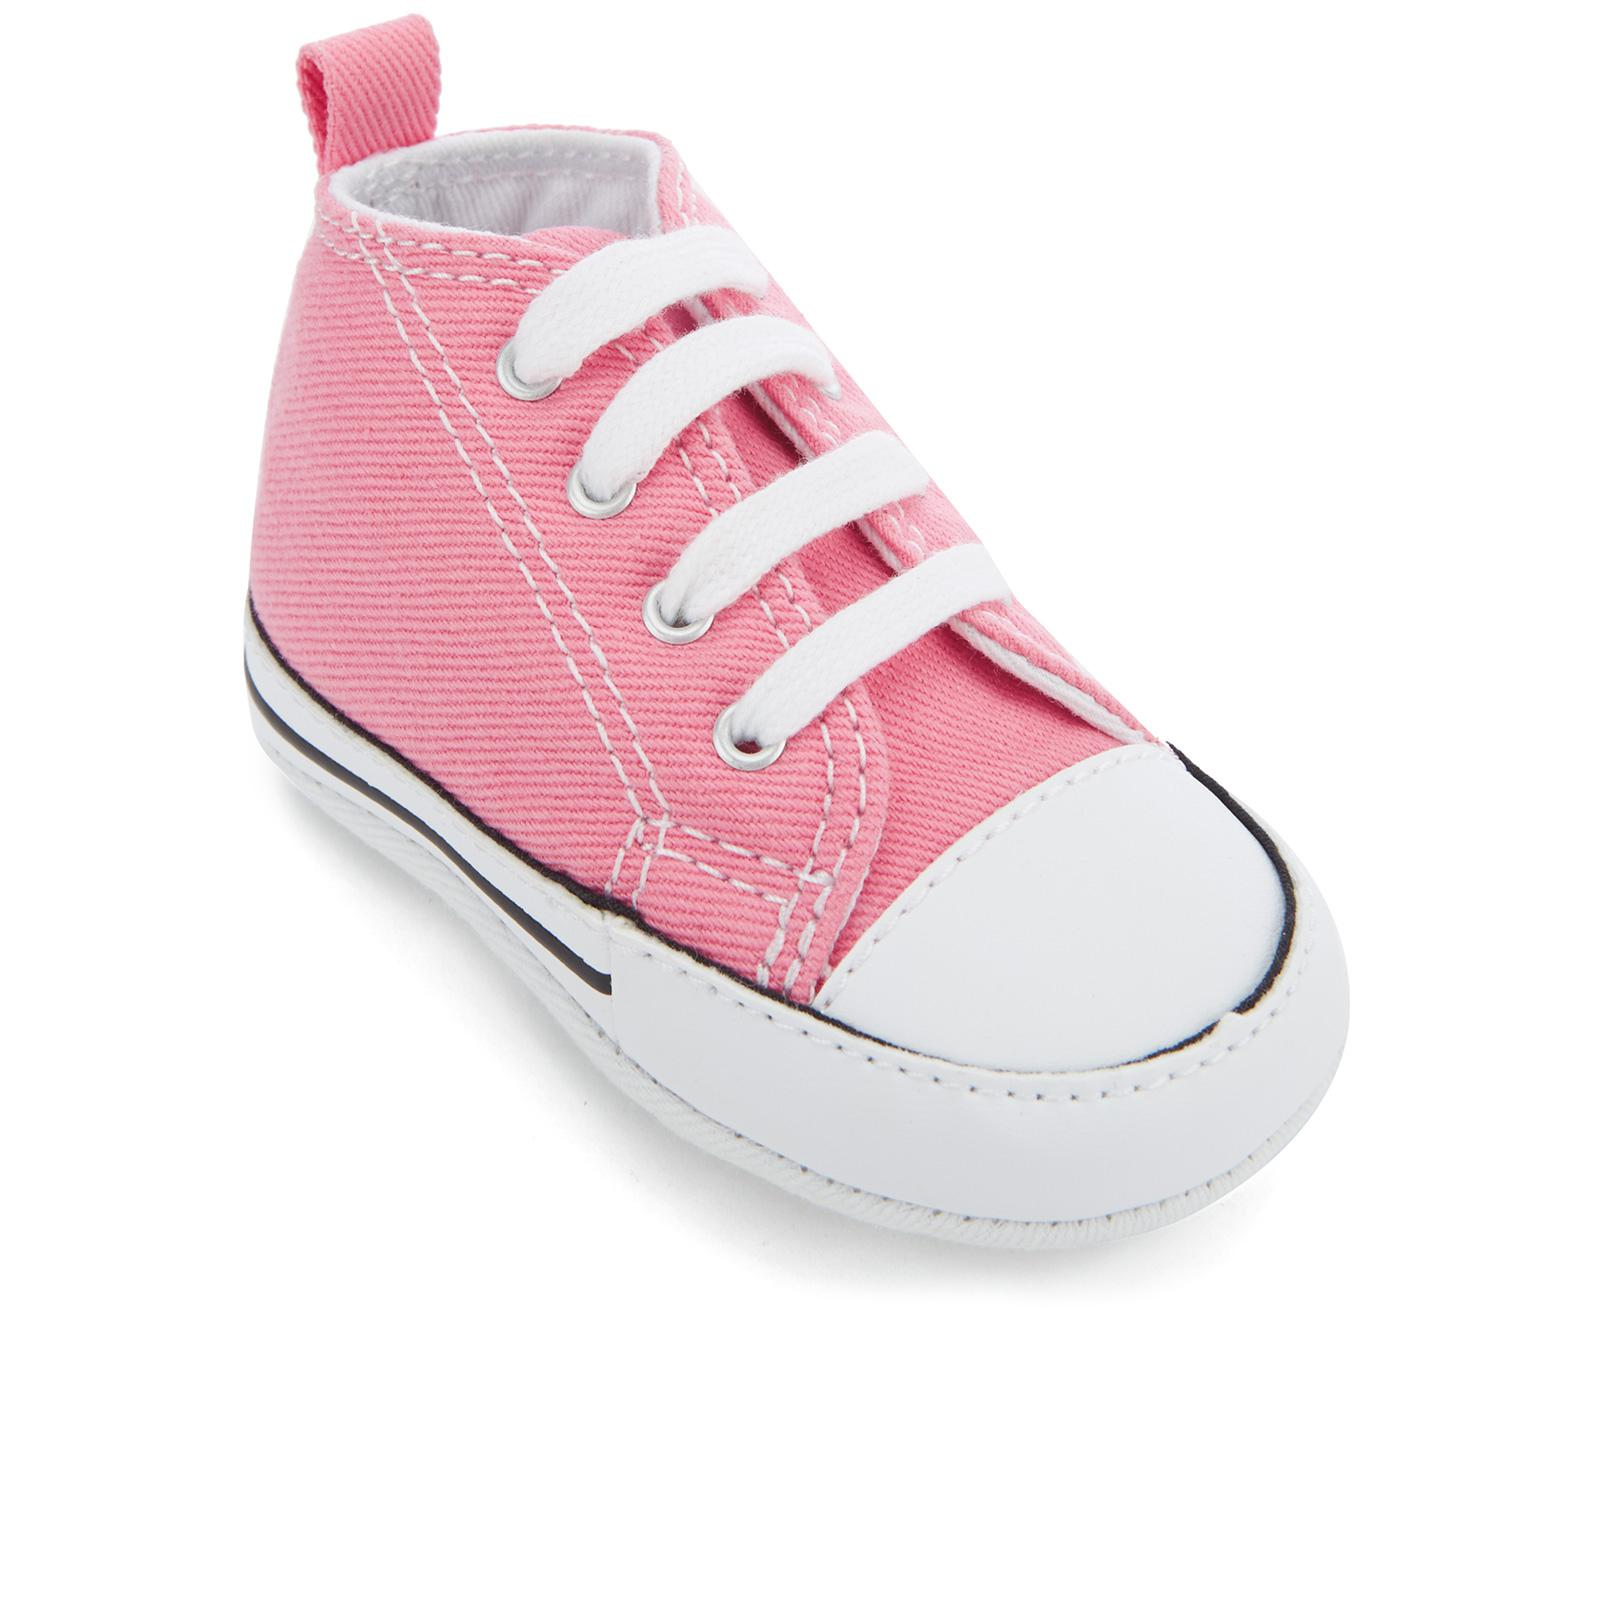 dde8dd53ee6a Lyst - Converse Babies Chuck Taylor First Star Hi-top Trainers in Pink